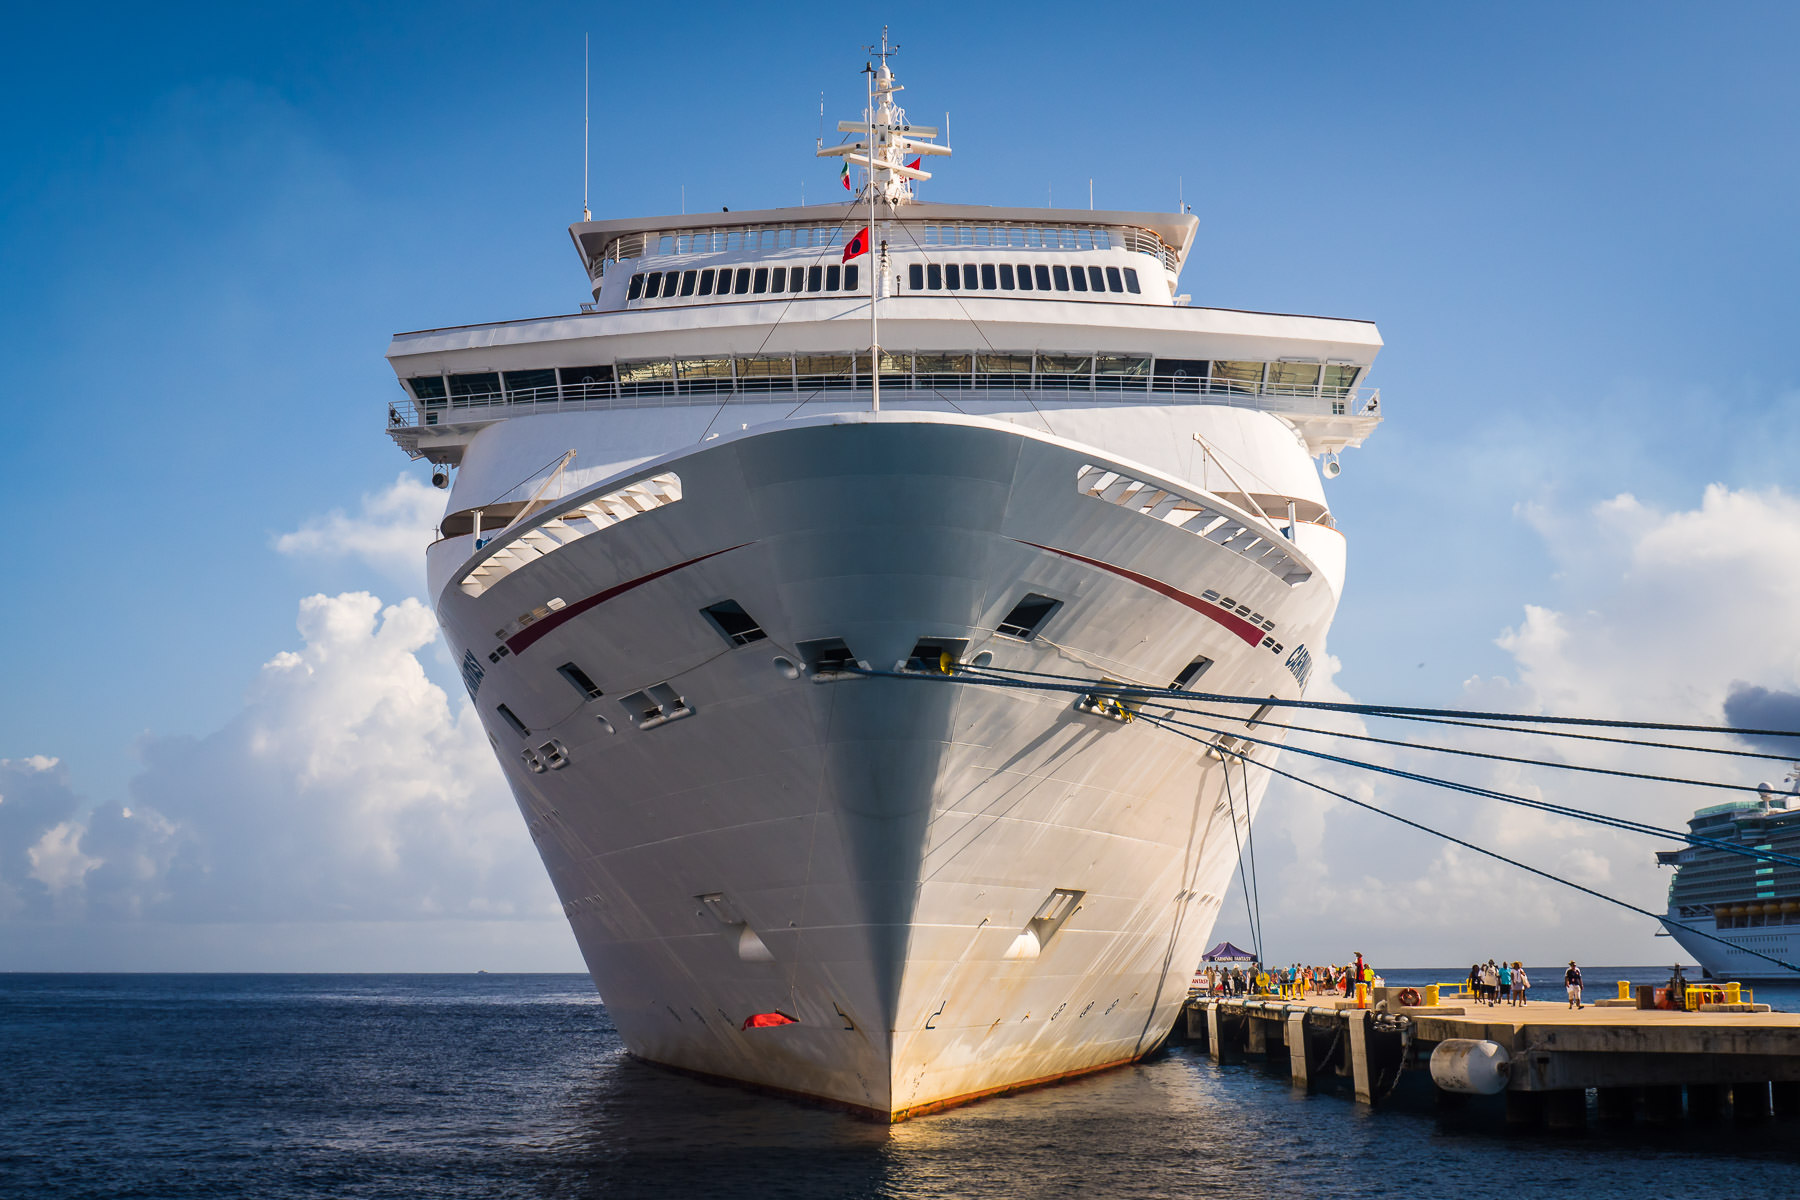 The bow of the cruise ship Carnival Fantasy looms over the adjacent pier at Cozumel, Mexico.